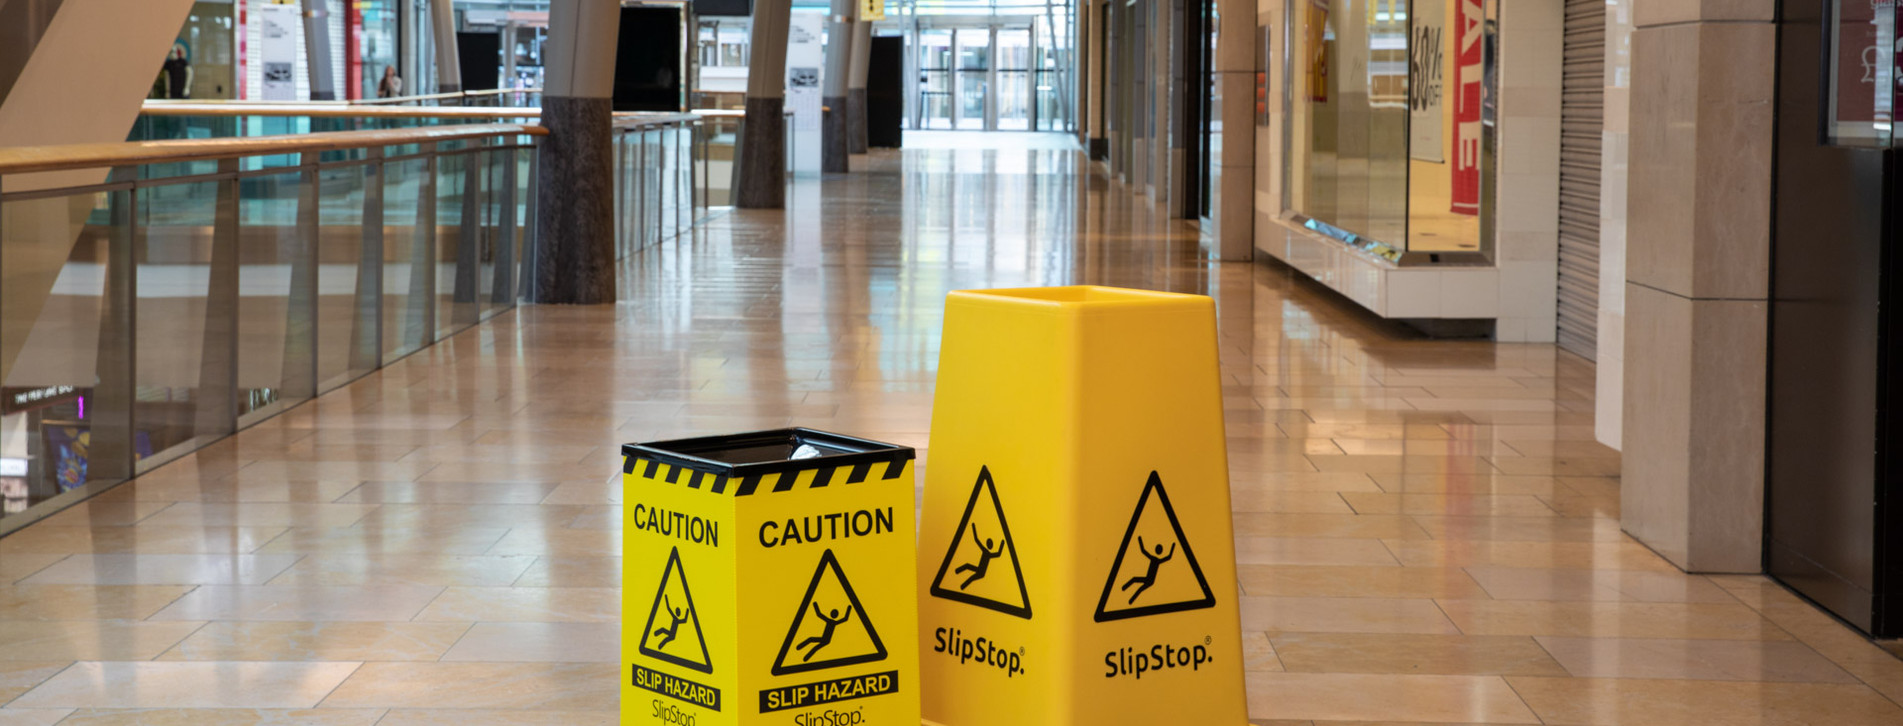 SlipStop 65 and SlipStop Cone in a Shopping mall